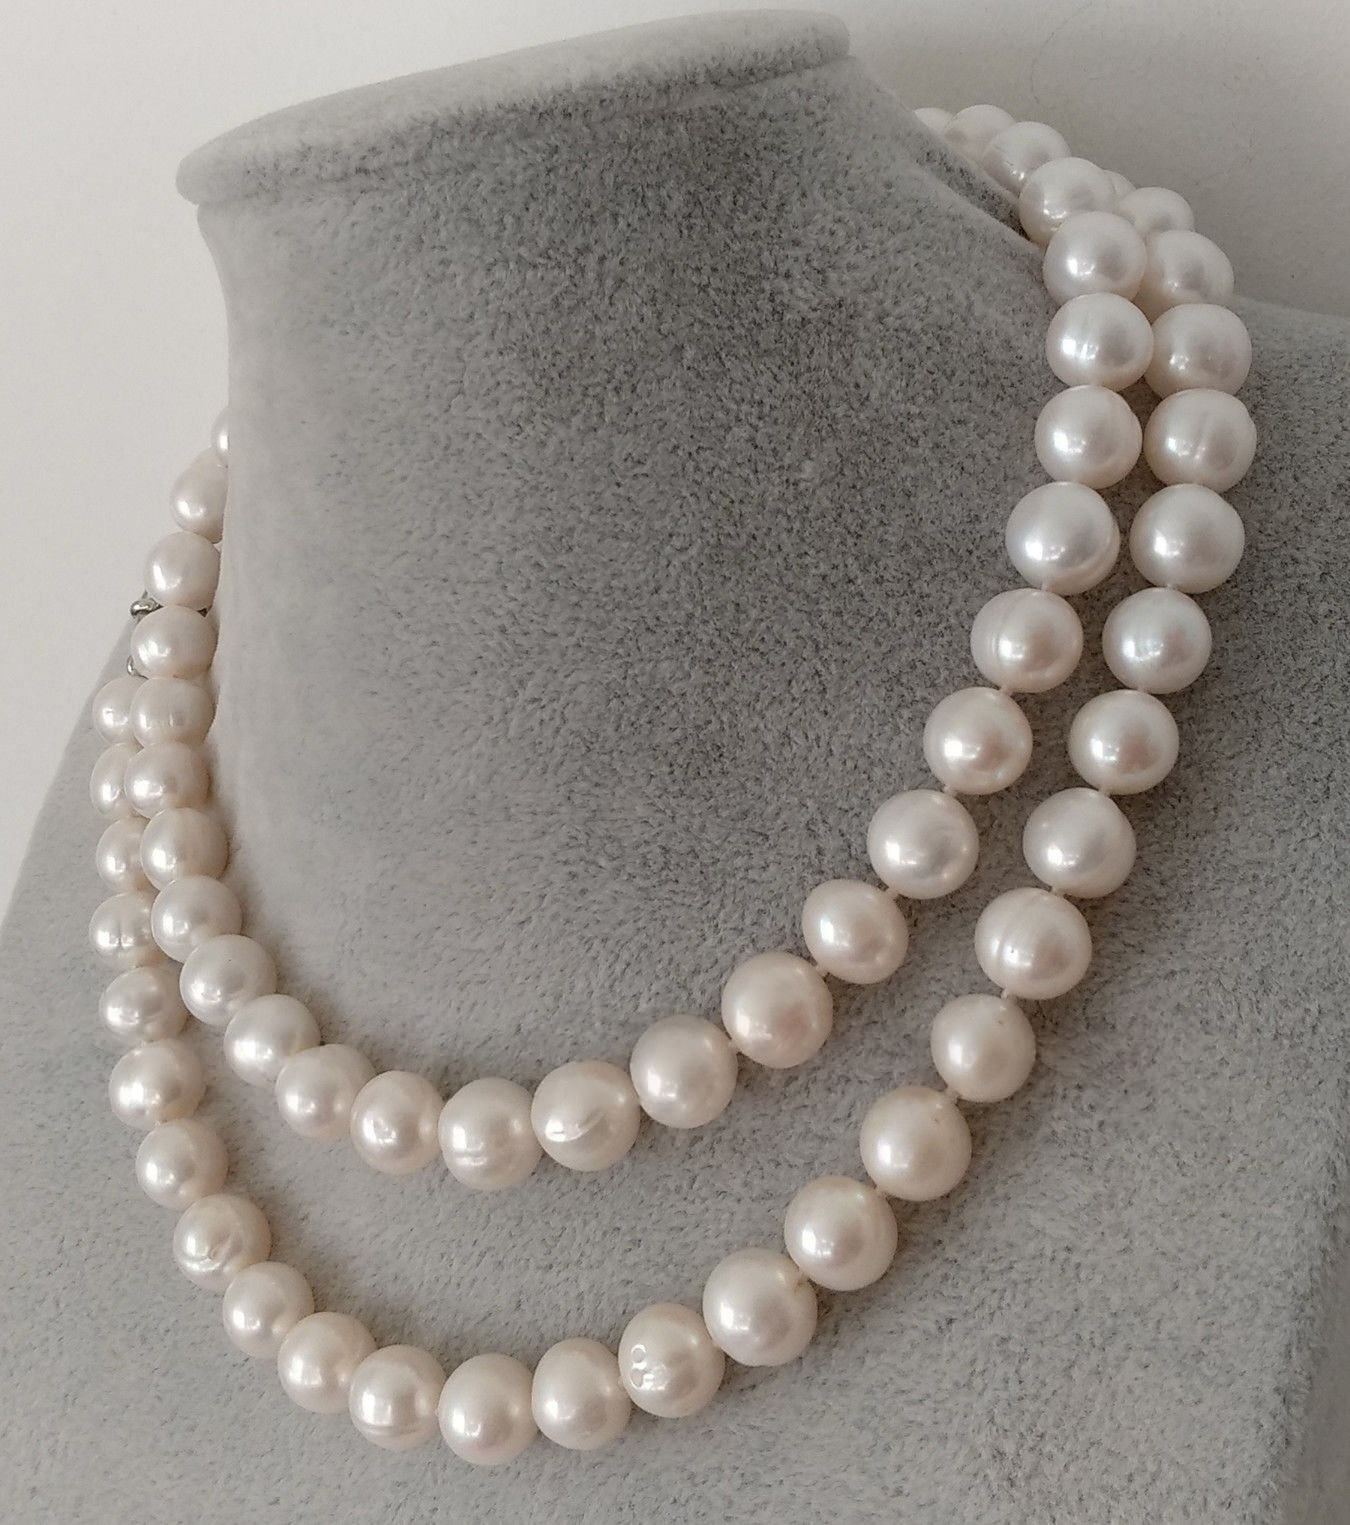 10-11mm-White-Huge-Freshwater-Cultured-Pearl-Necklace-25-Inch